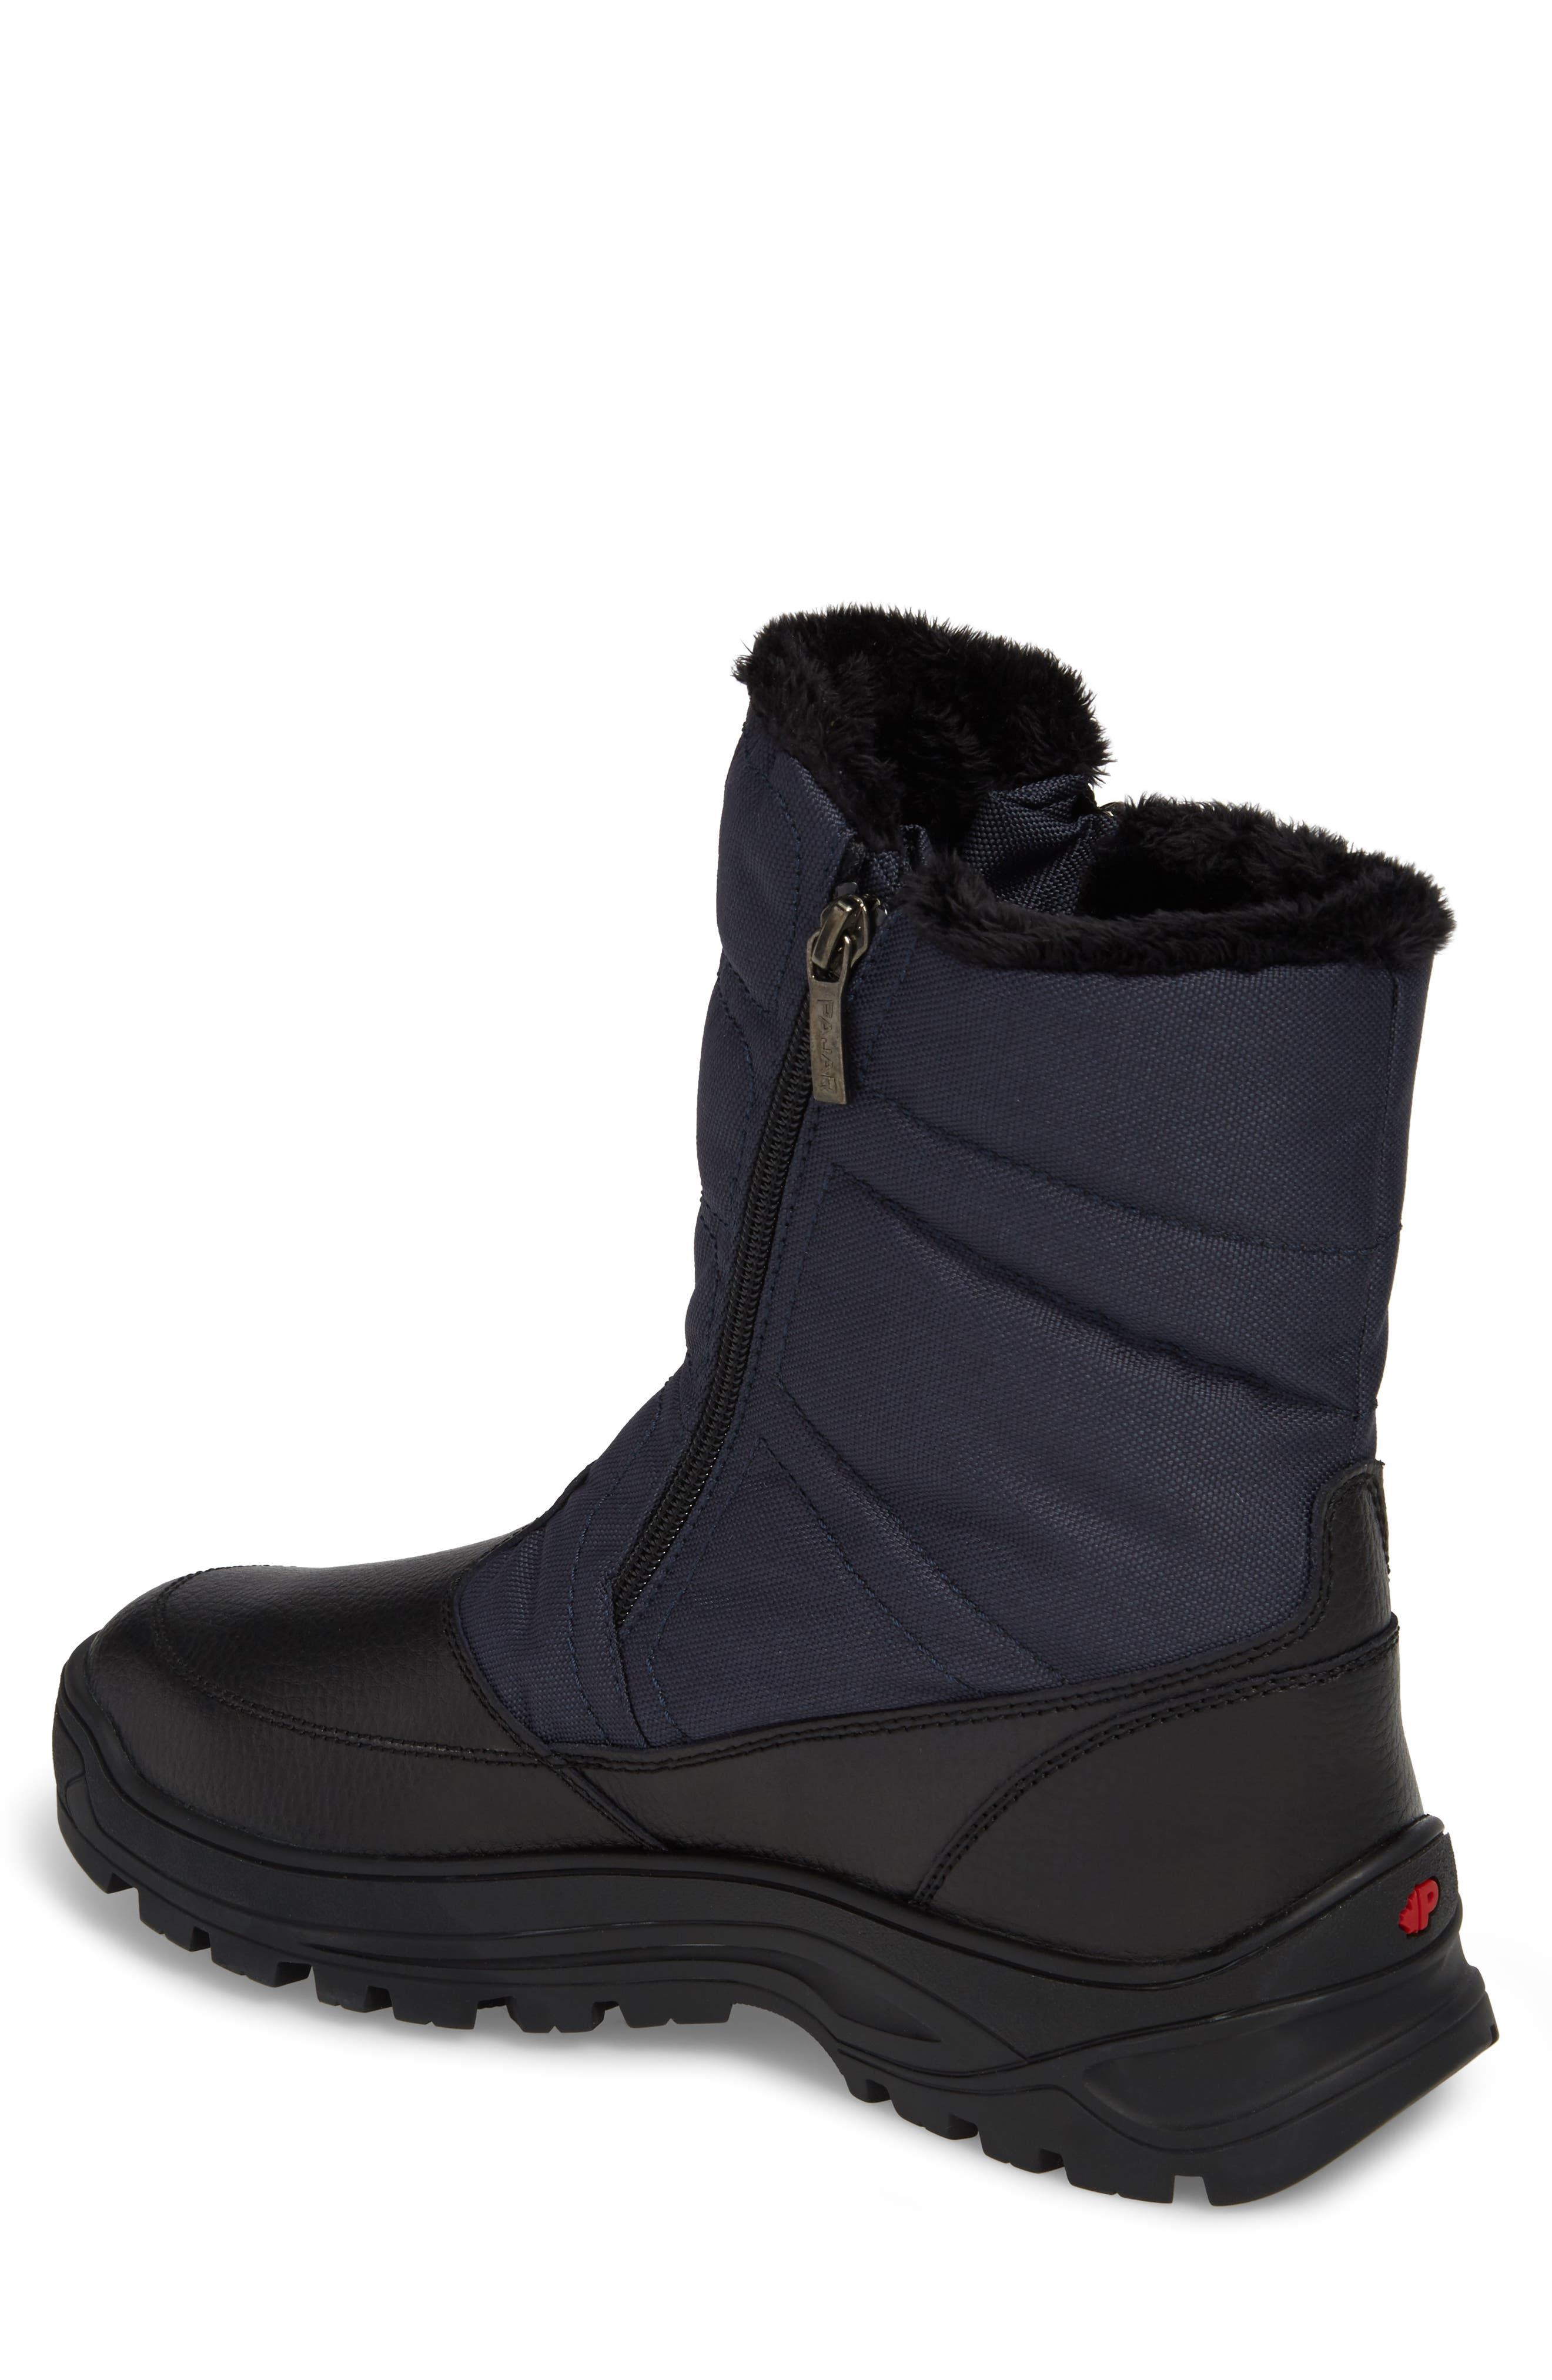 Mirko Waterproof Insulated Boot,                             Alternate thumbnail 3, color,                             410